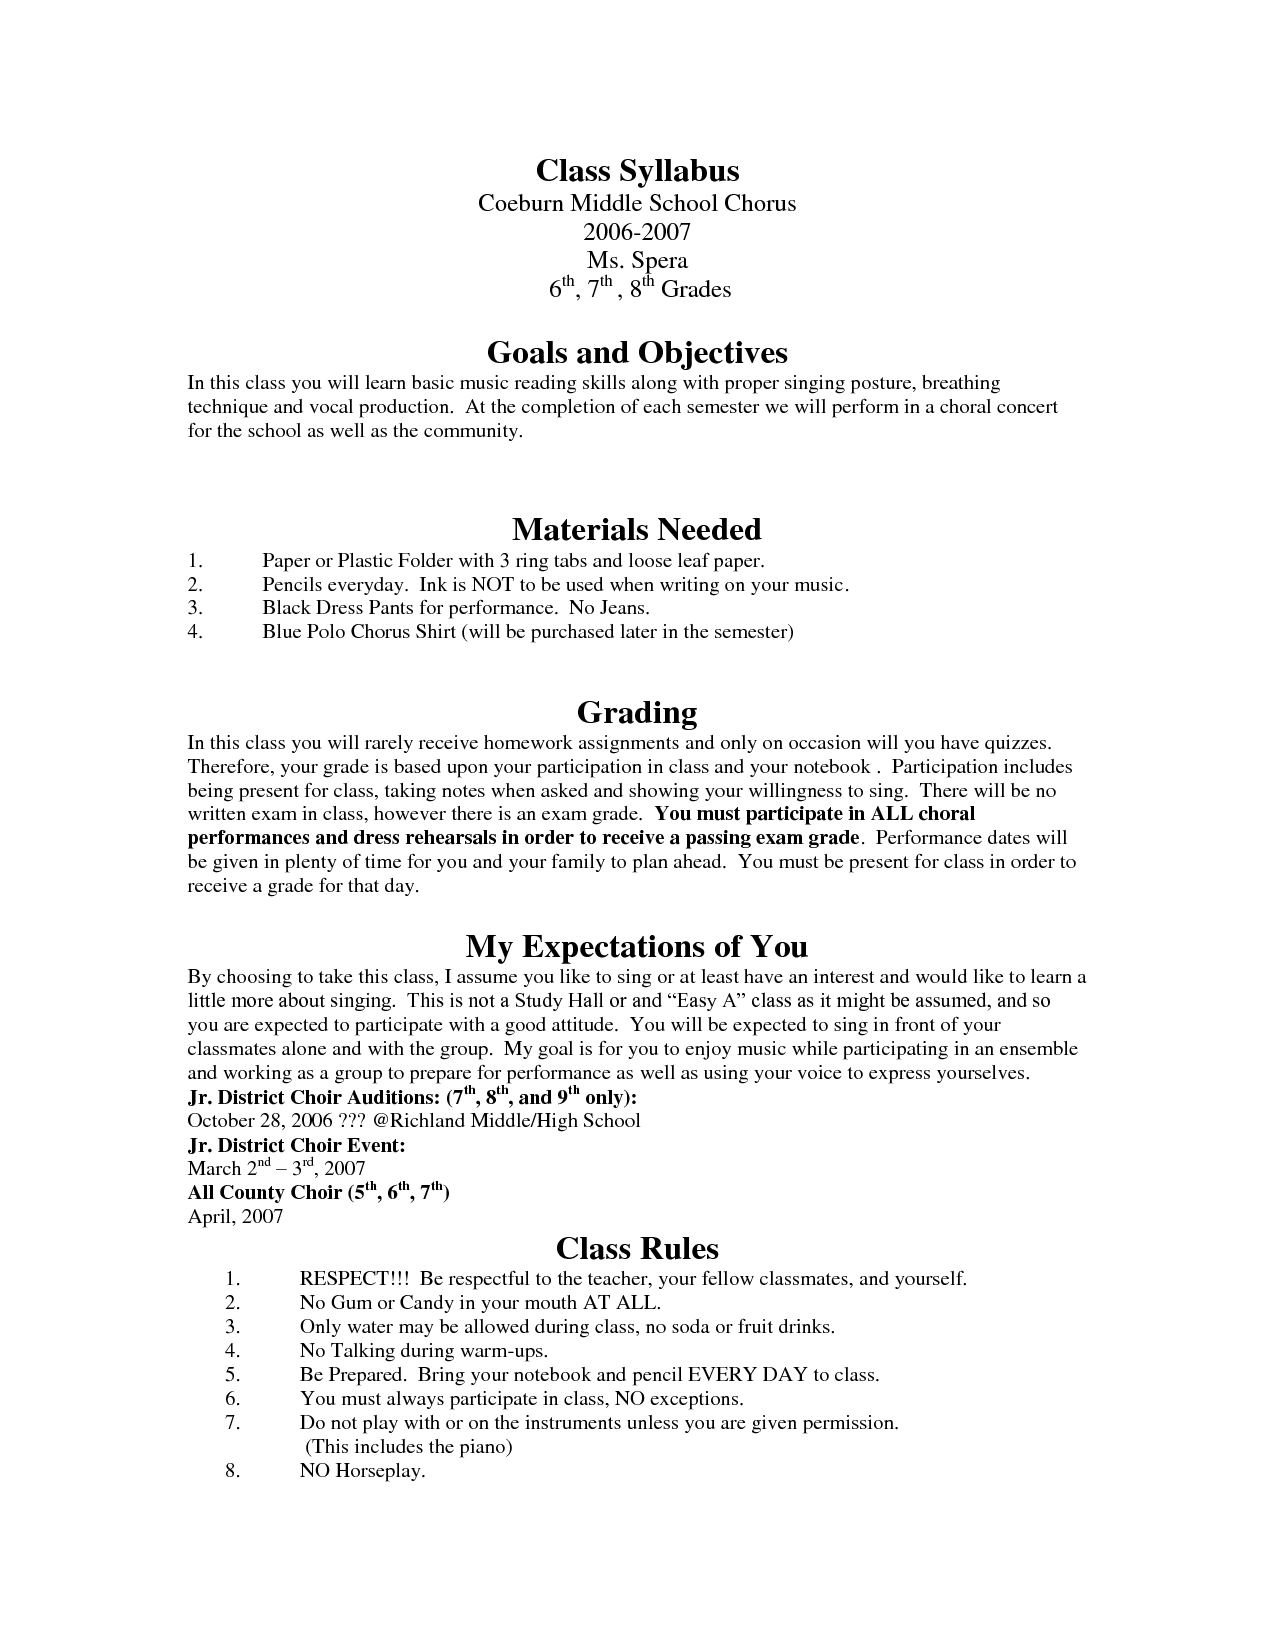 High School Syllabus Template High School Syllabus Syllabus Template Syllabus Template High Schools